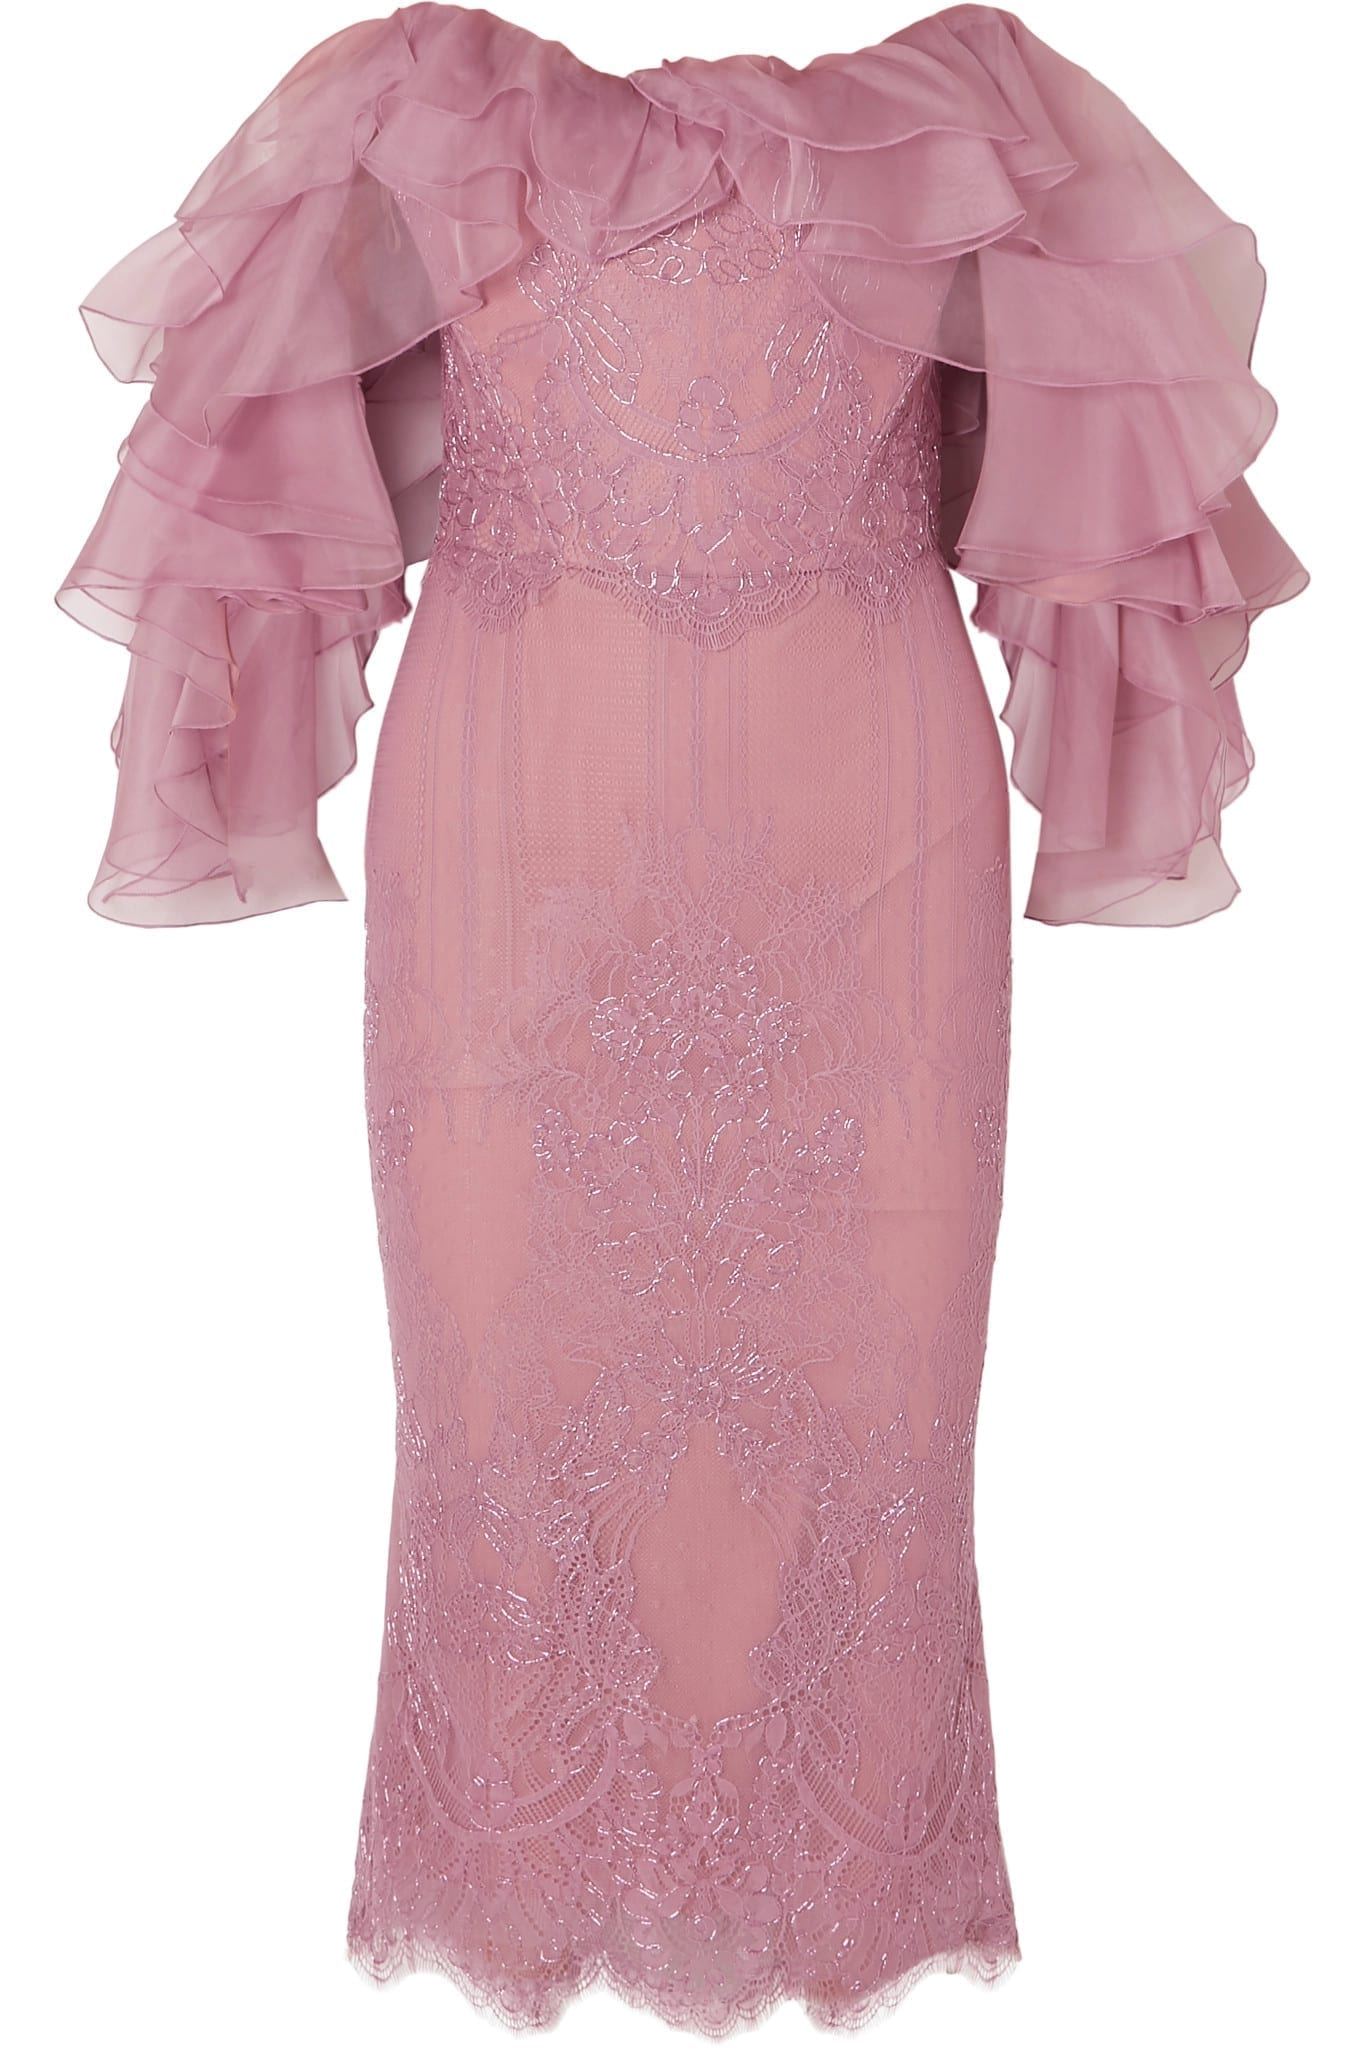 MARCHESA Off-the-shoulder Ruffled Corded Lace And Organza Lilac Dress